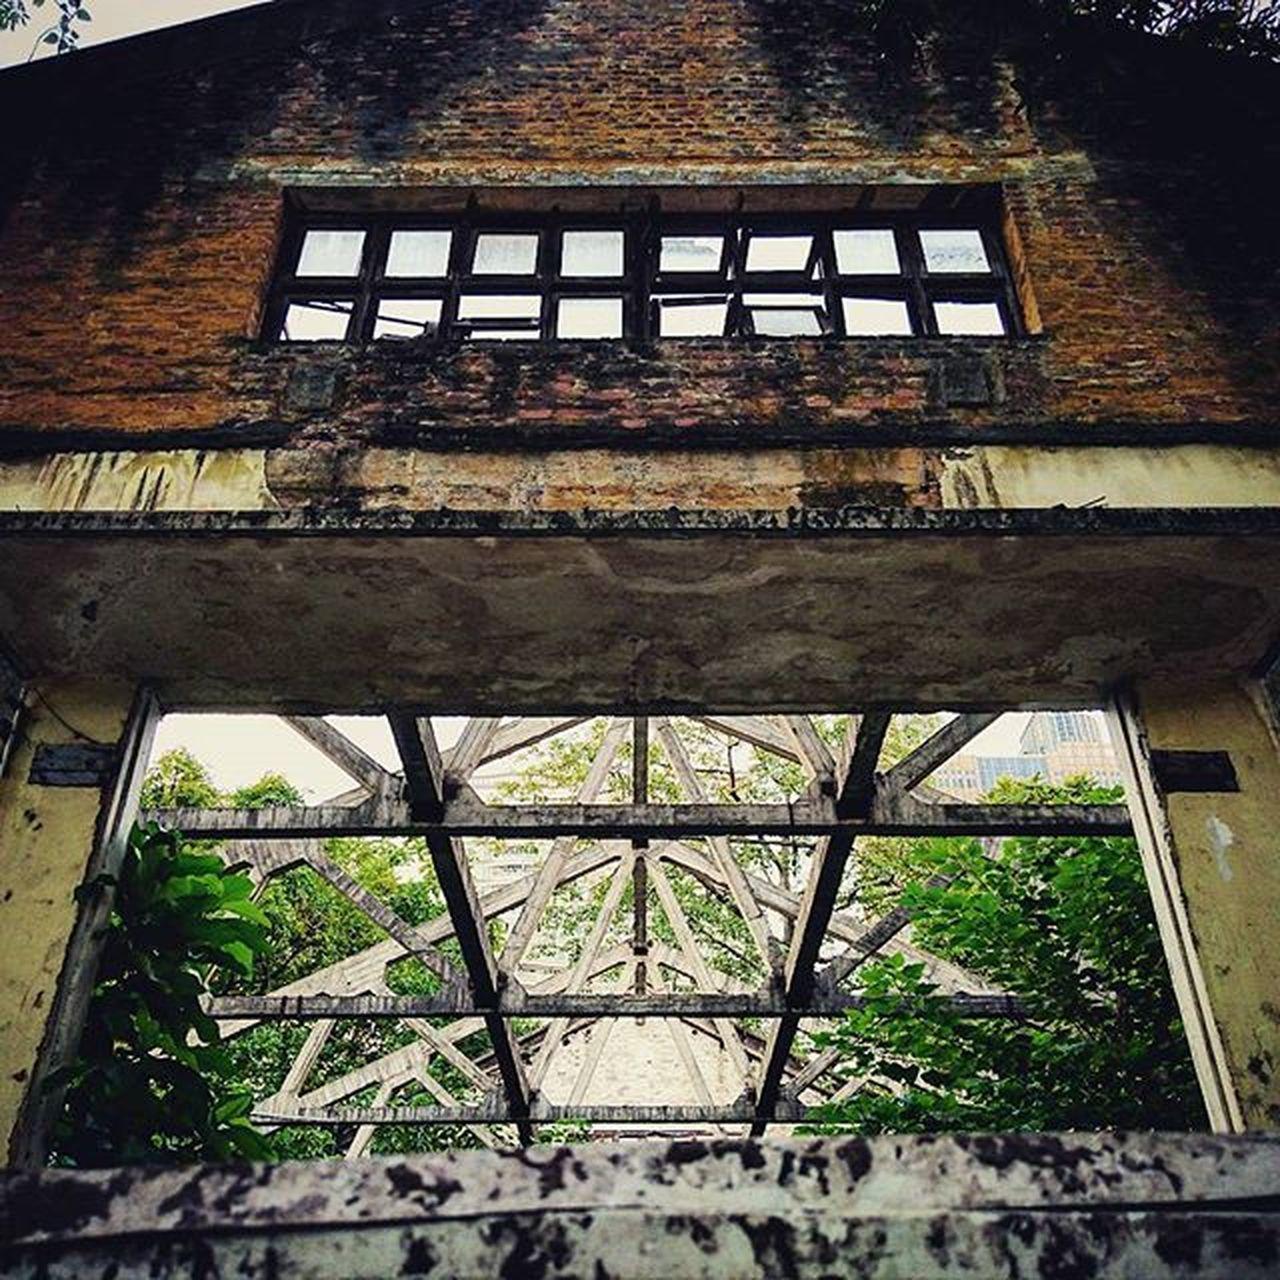 architecture, day, built structure, no people, low angle view, outdoors, growth